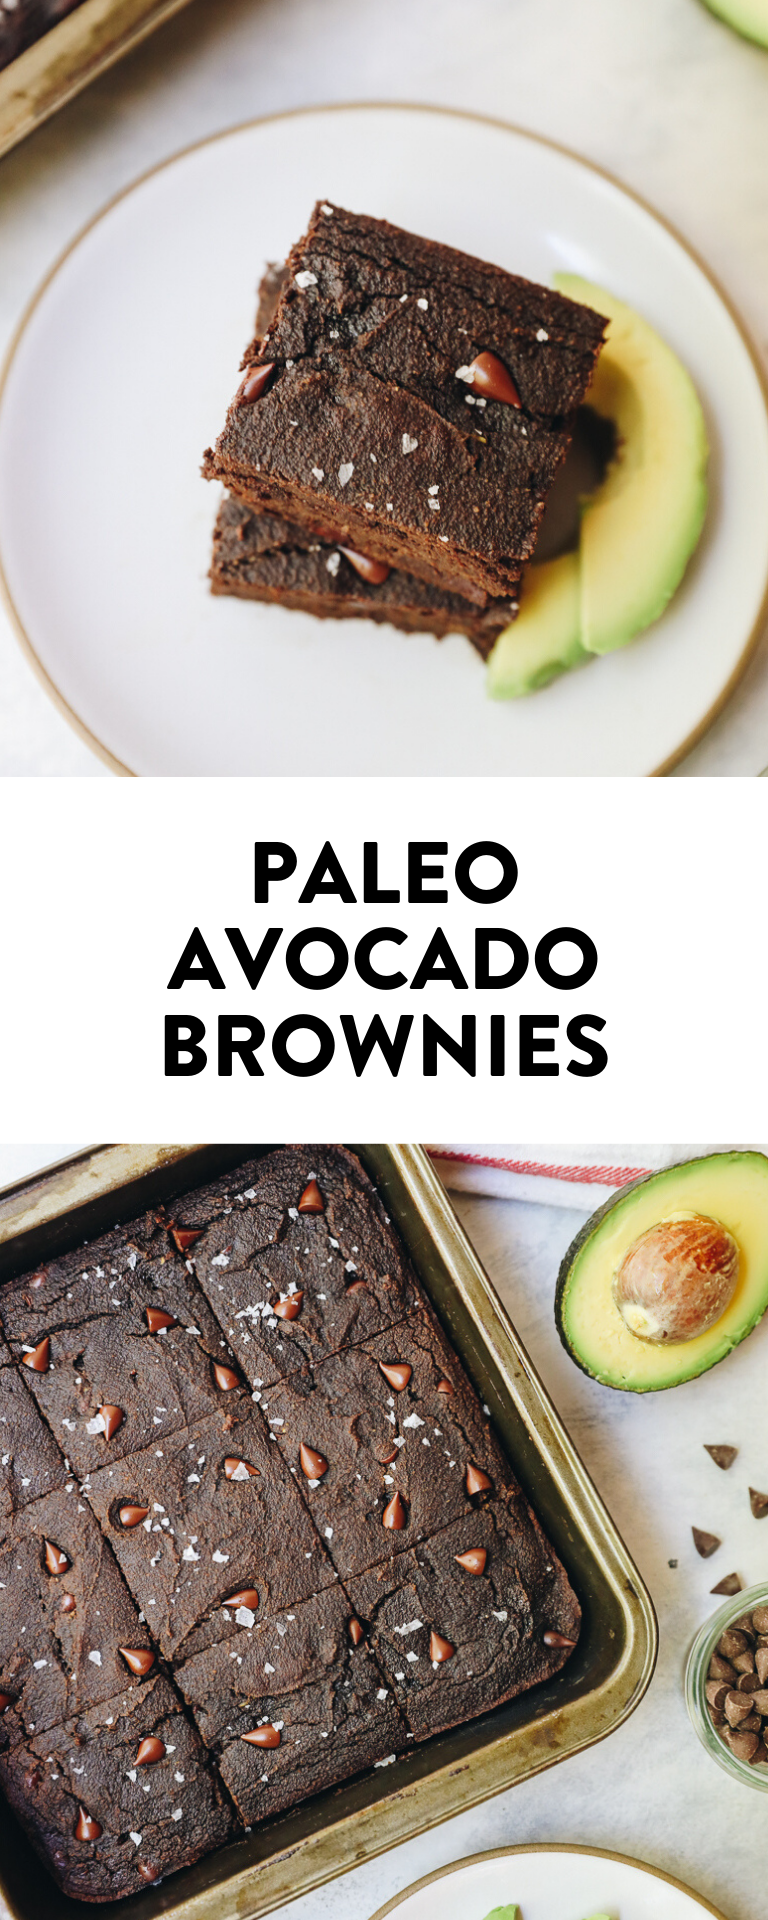 Healthy Avocado Brownies The Healthy Maven In 2020 Paleo Recipes Dessert Healthy Dessert Recipes Nutritious Desserts